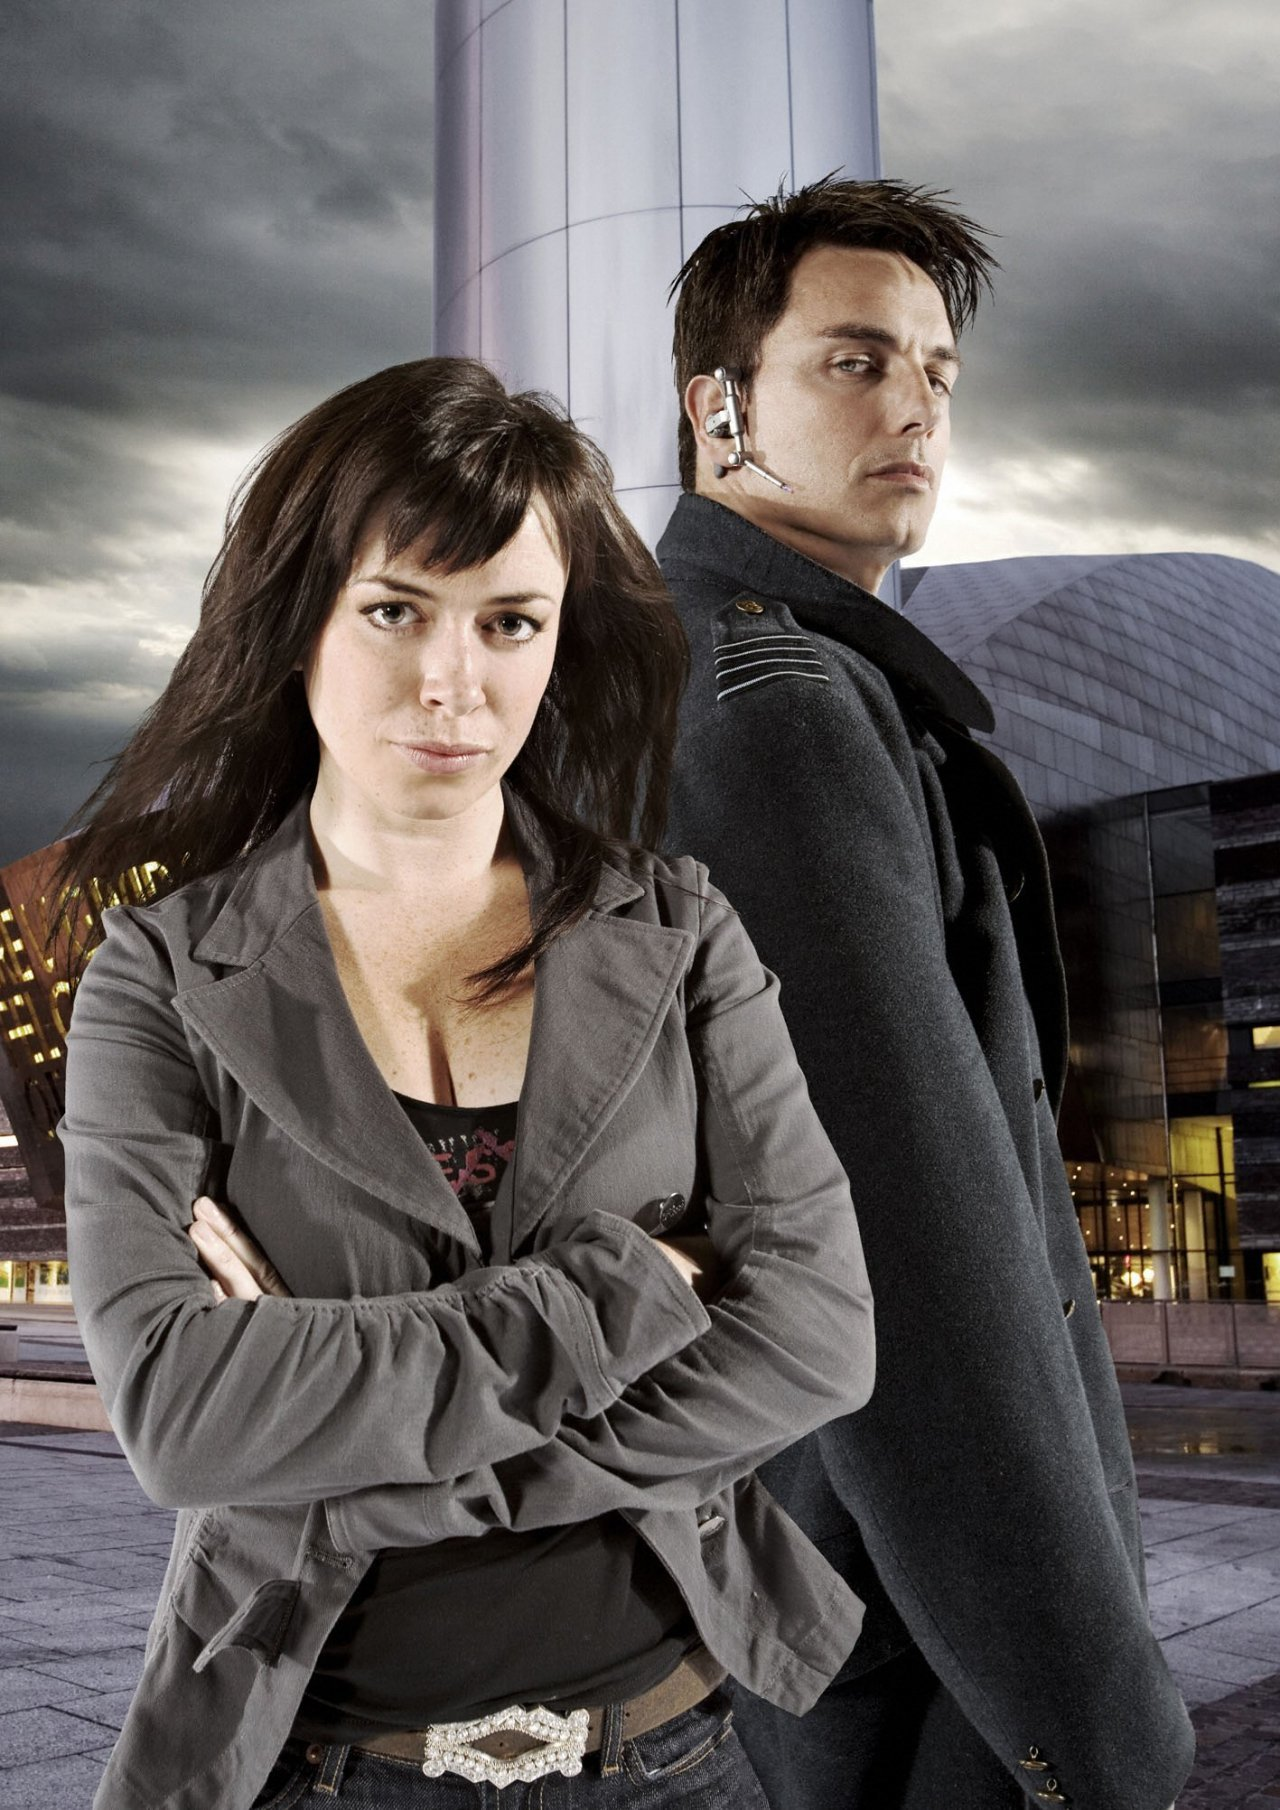 Jack Torchwood eve myles HD Wallpaper